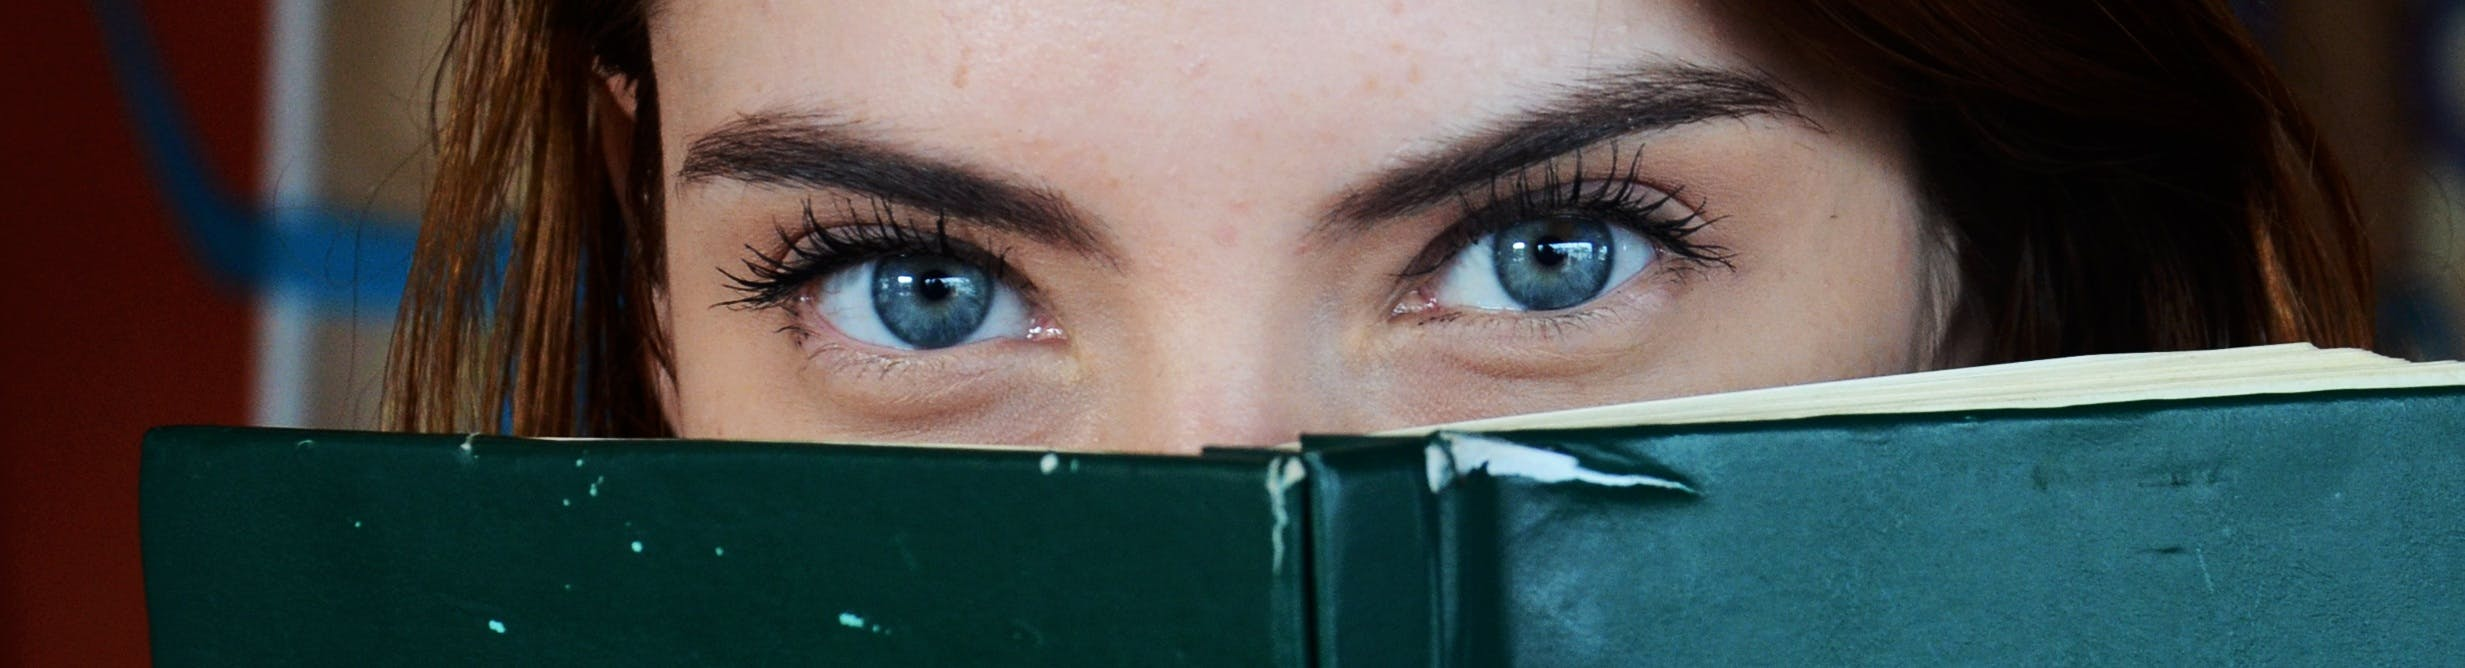 Free stock photo of person, woman, girl, eyes